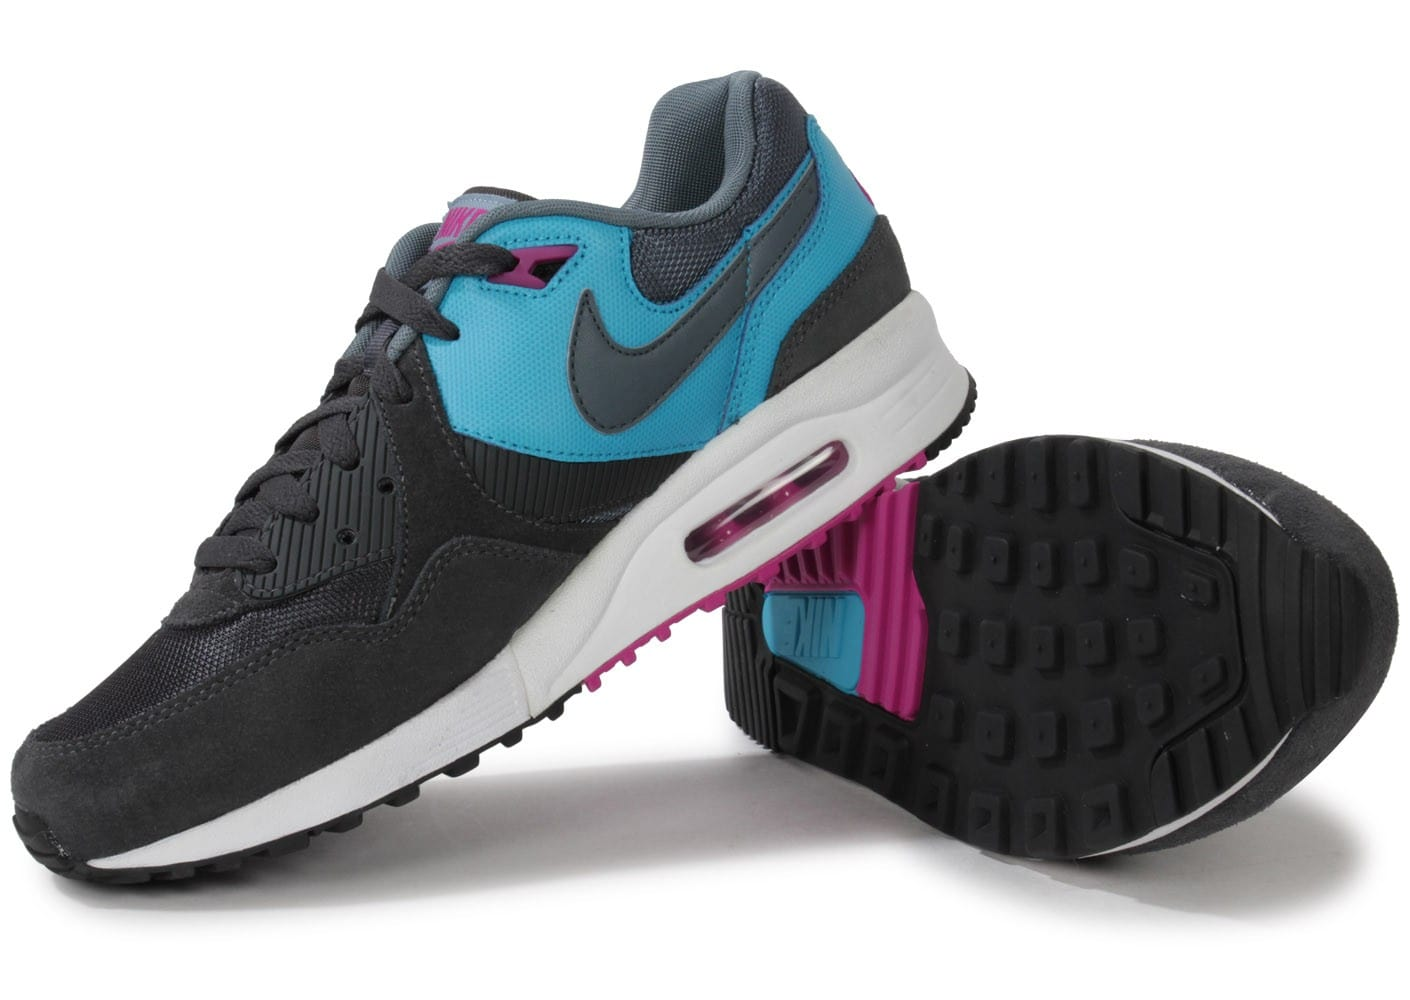 nike air max light grise et bleue chaussures homme chausport. Black Bedroom Furniture Sets. Home Design Ideas